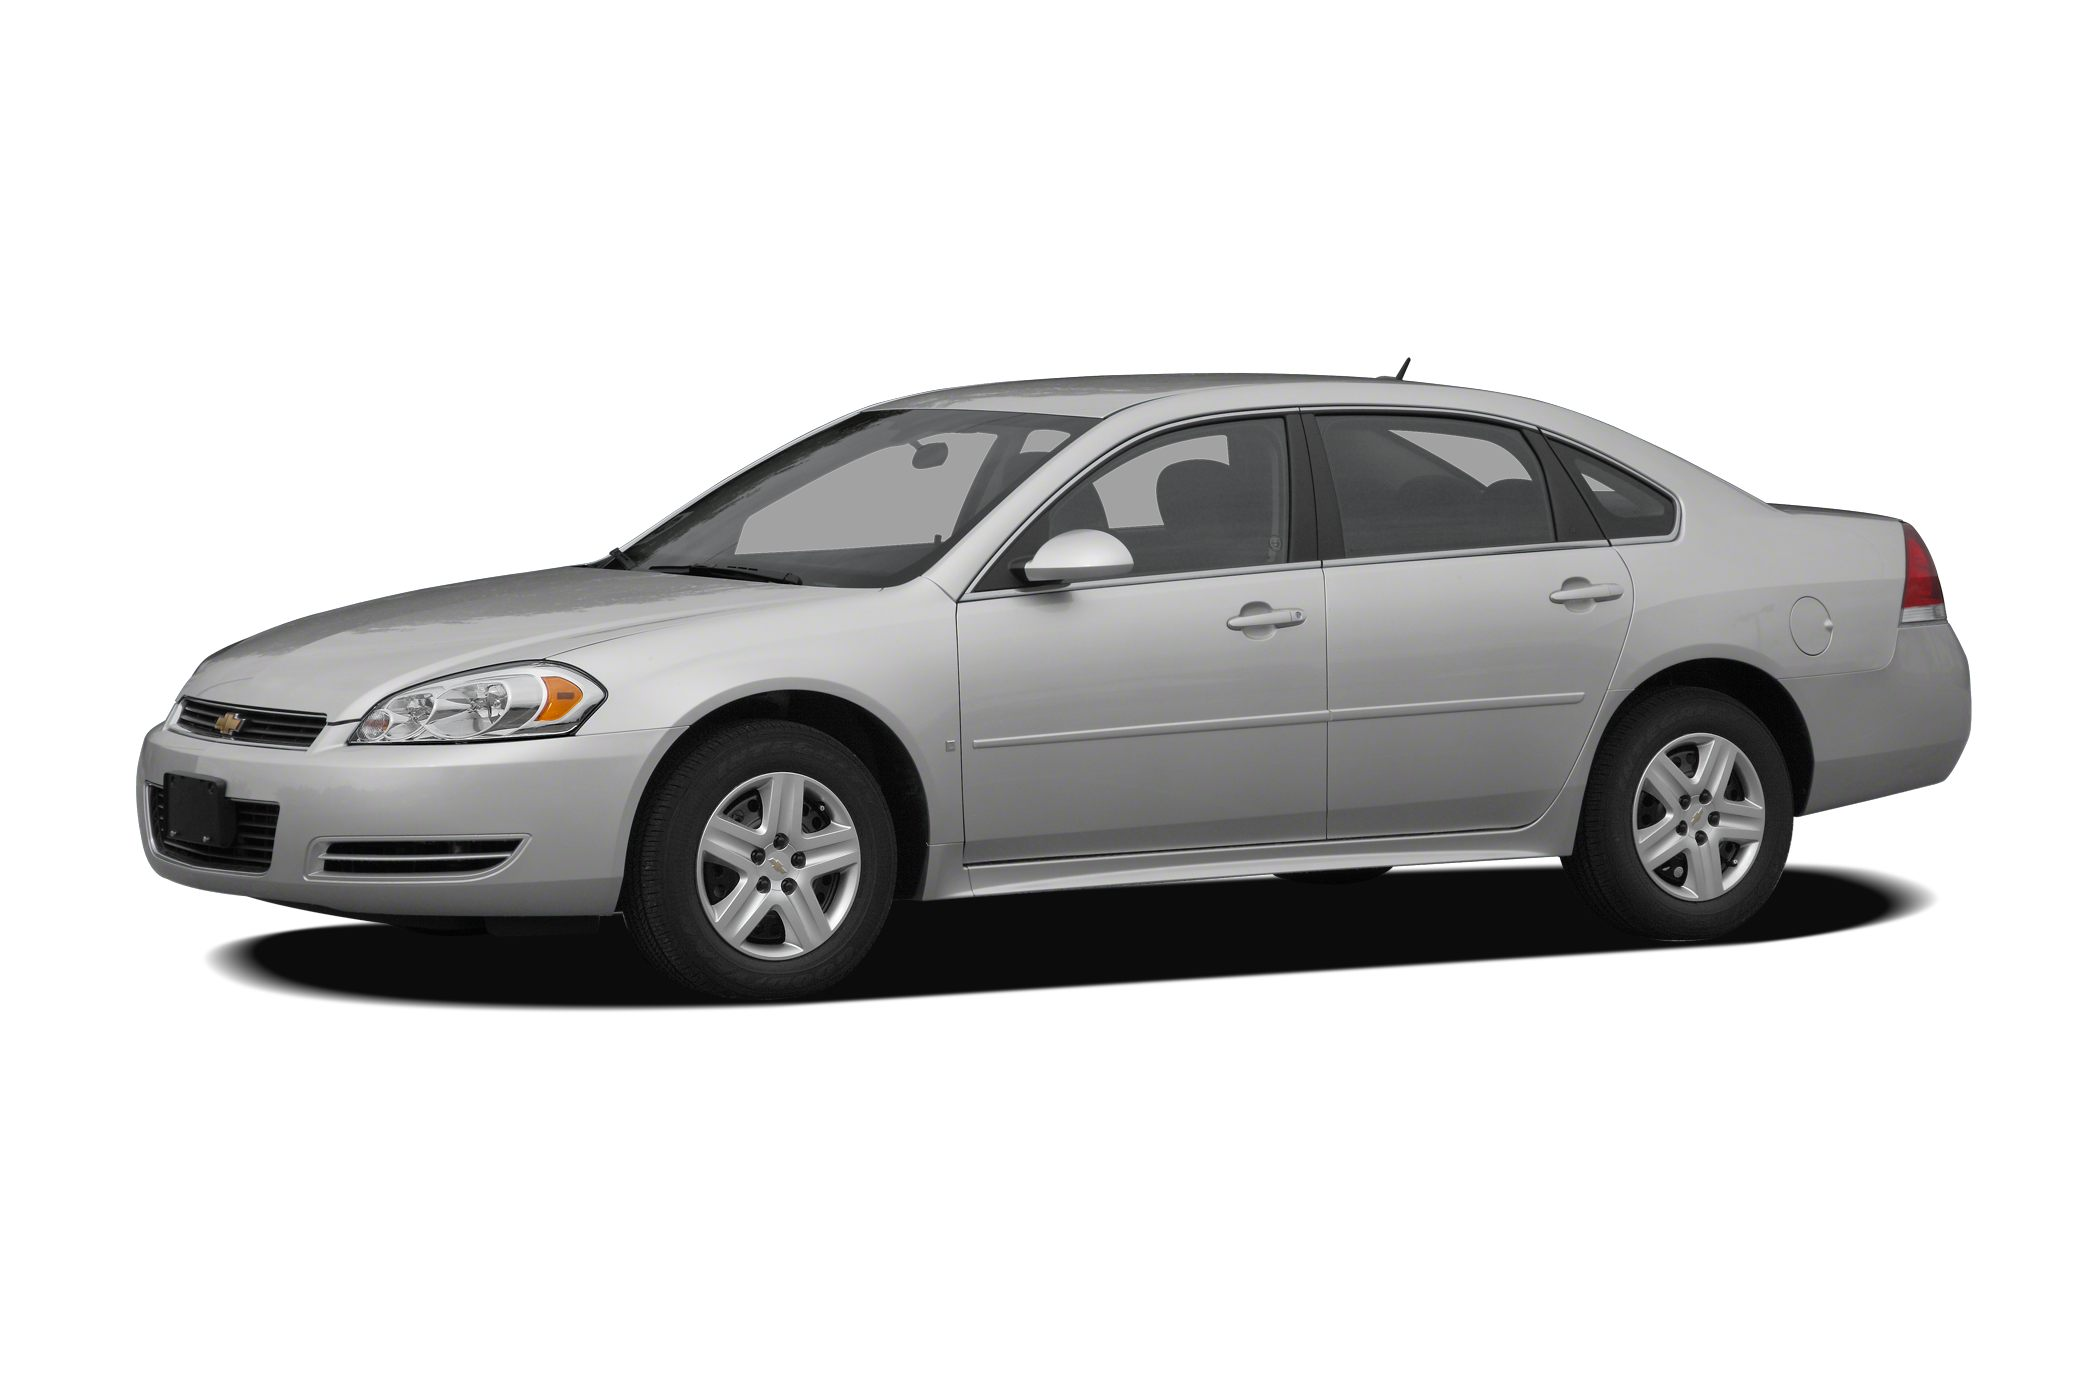 2009 Chevrolet Impala LS GREAT MILES 19345 EPA 29 MPG Hwy19 MPG City LS trim 12000 Mile Warr